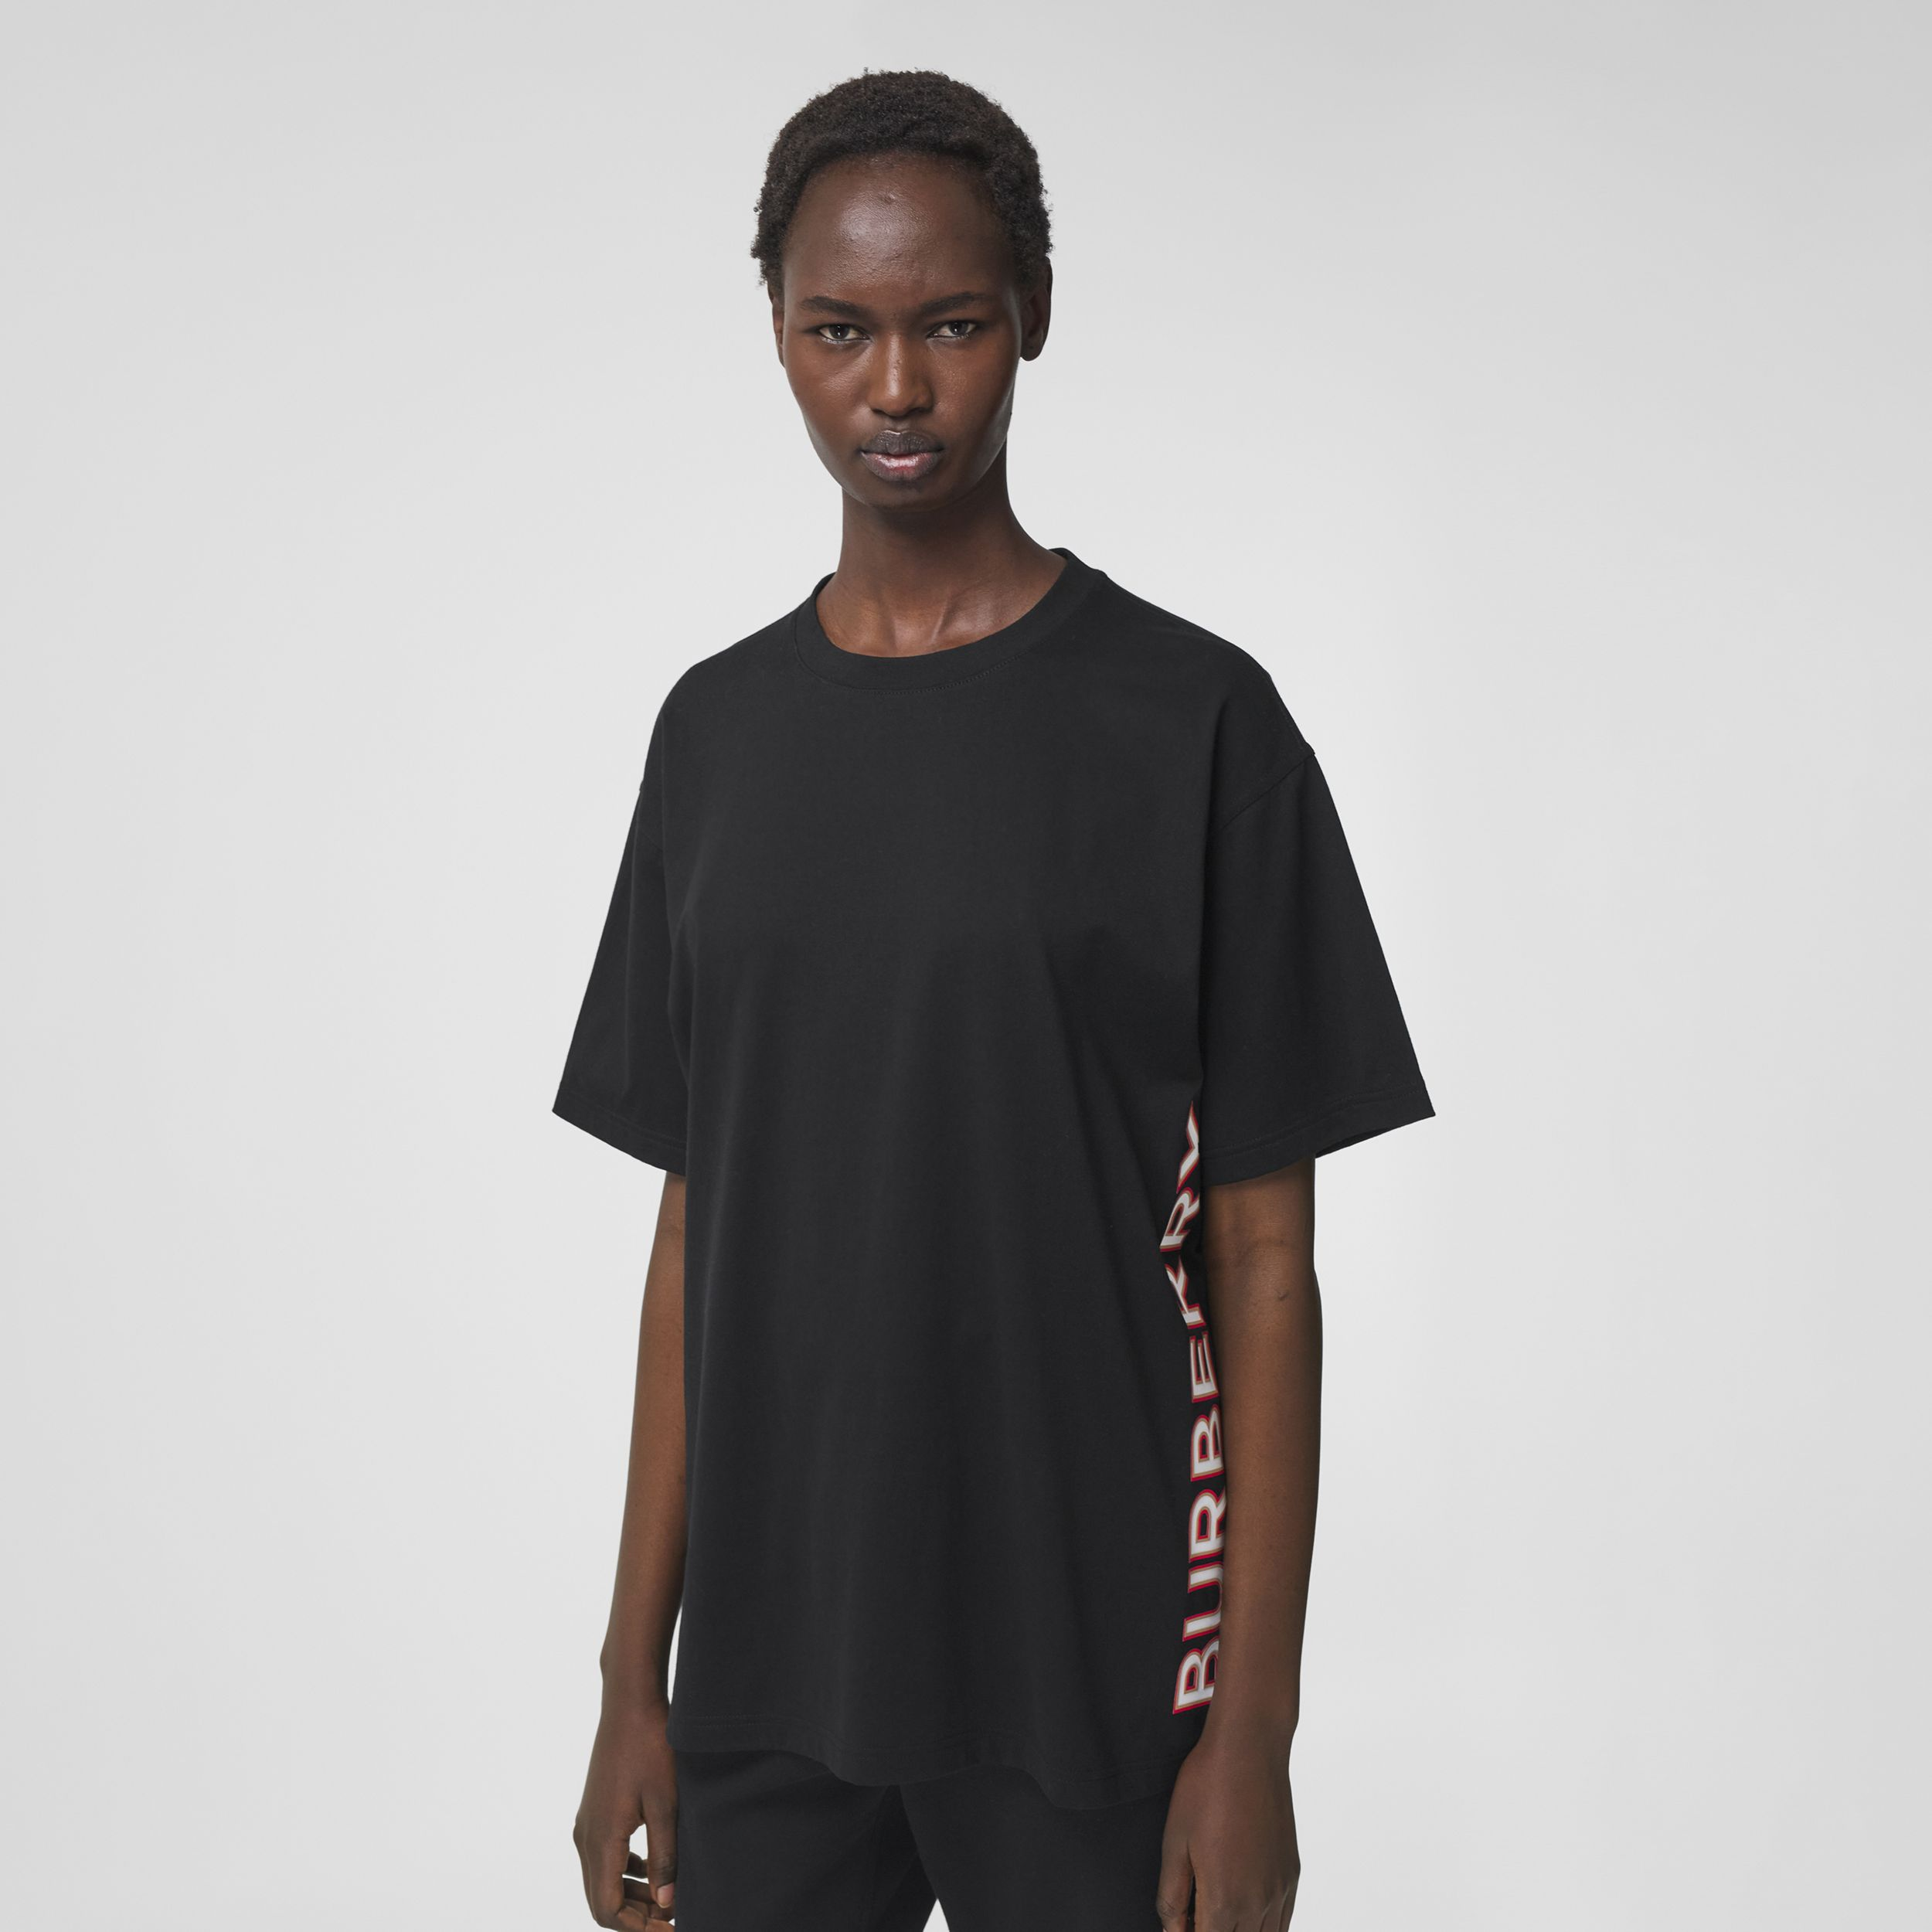 Logo Print Cotton Oversized T-shirt in Black - Women | Burberry - 4